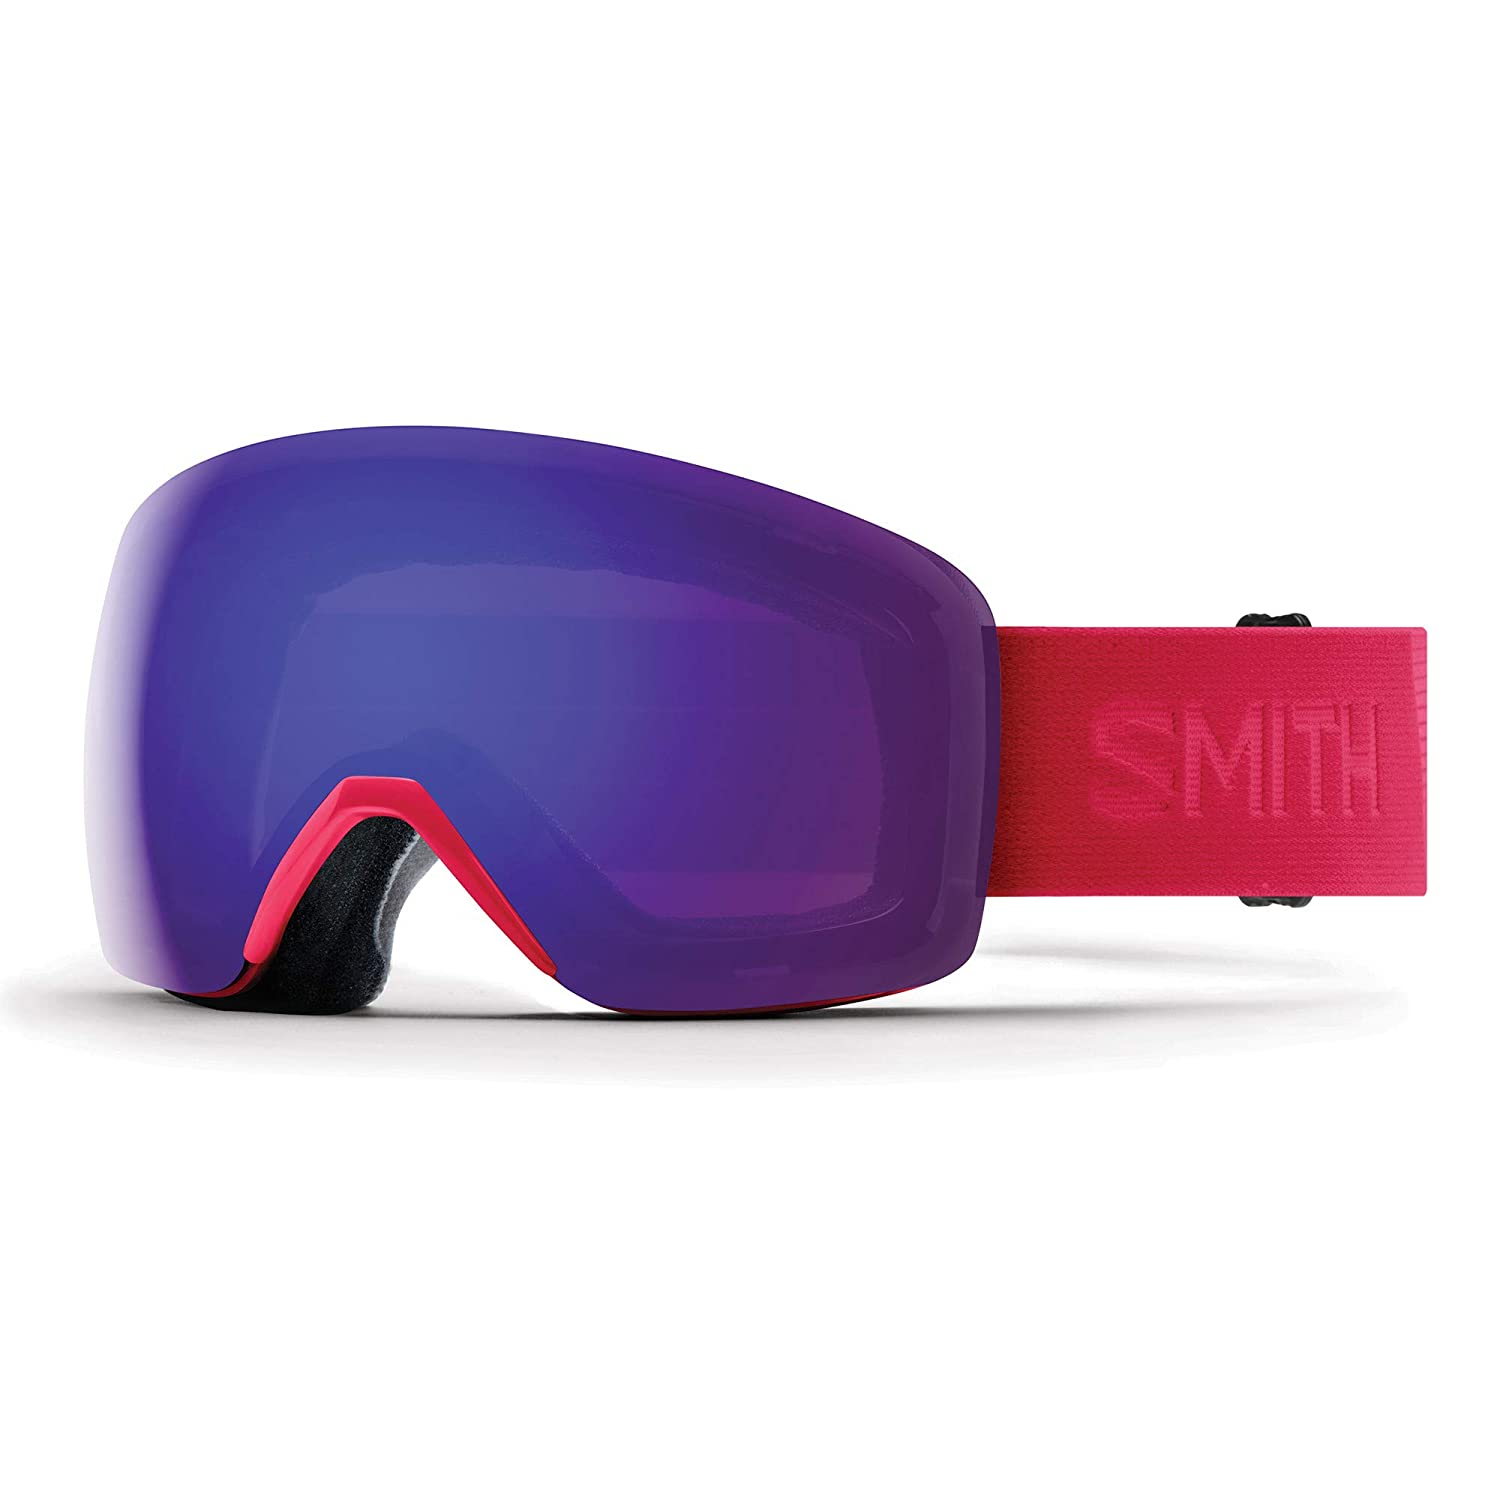 1aa644490595 Amazon.com   Smith Women s Skyline Snow Goggles B4BC Pink with Everyday  Violet Mirror Lens   Sports   Outdoors